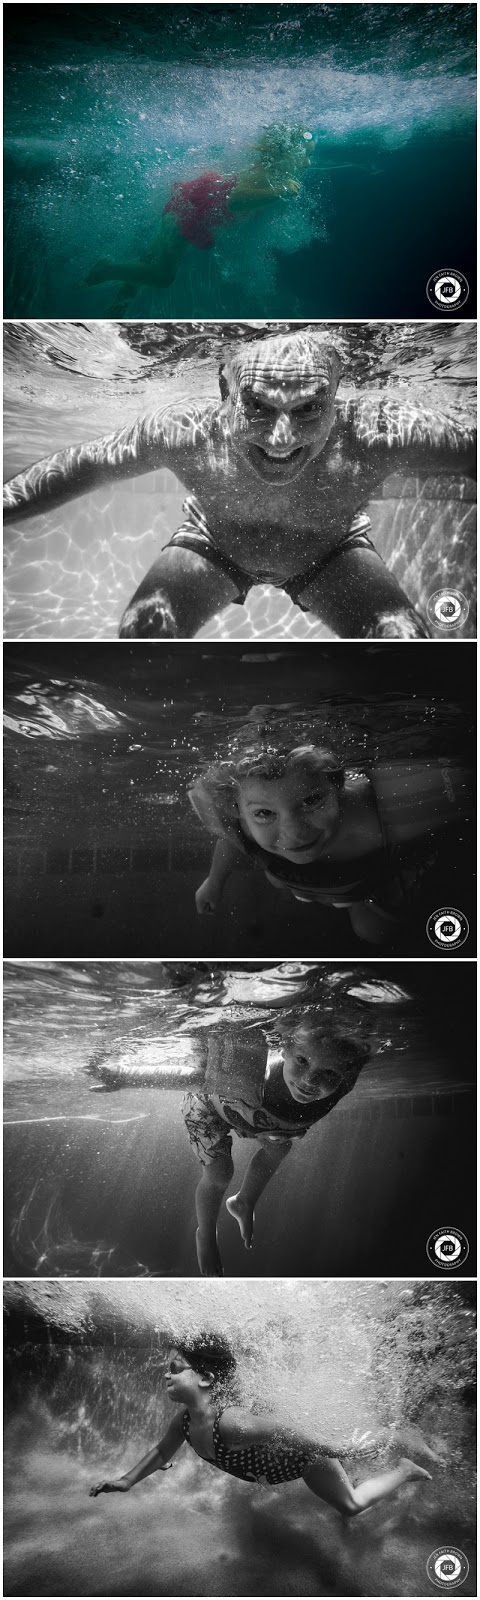 underwater photography, sonyrx100, underwater housing, flower mound photographer, hurst photography, family photographer, swimming, photo underwater